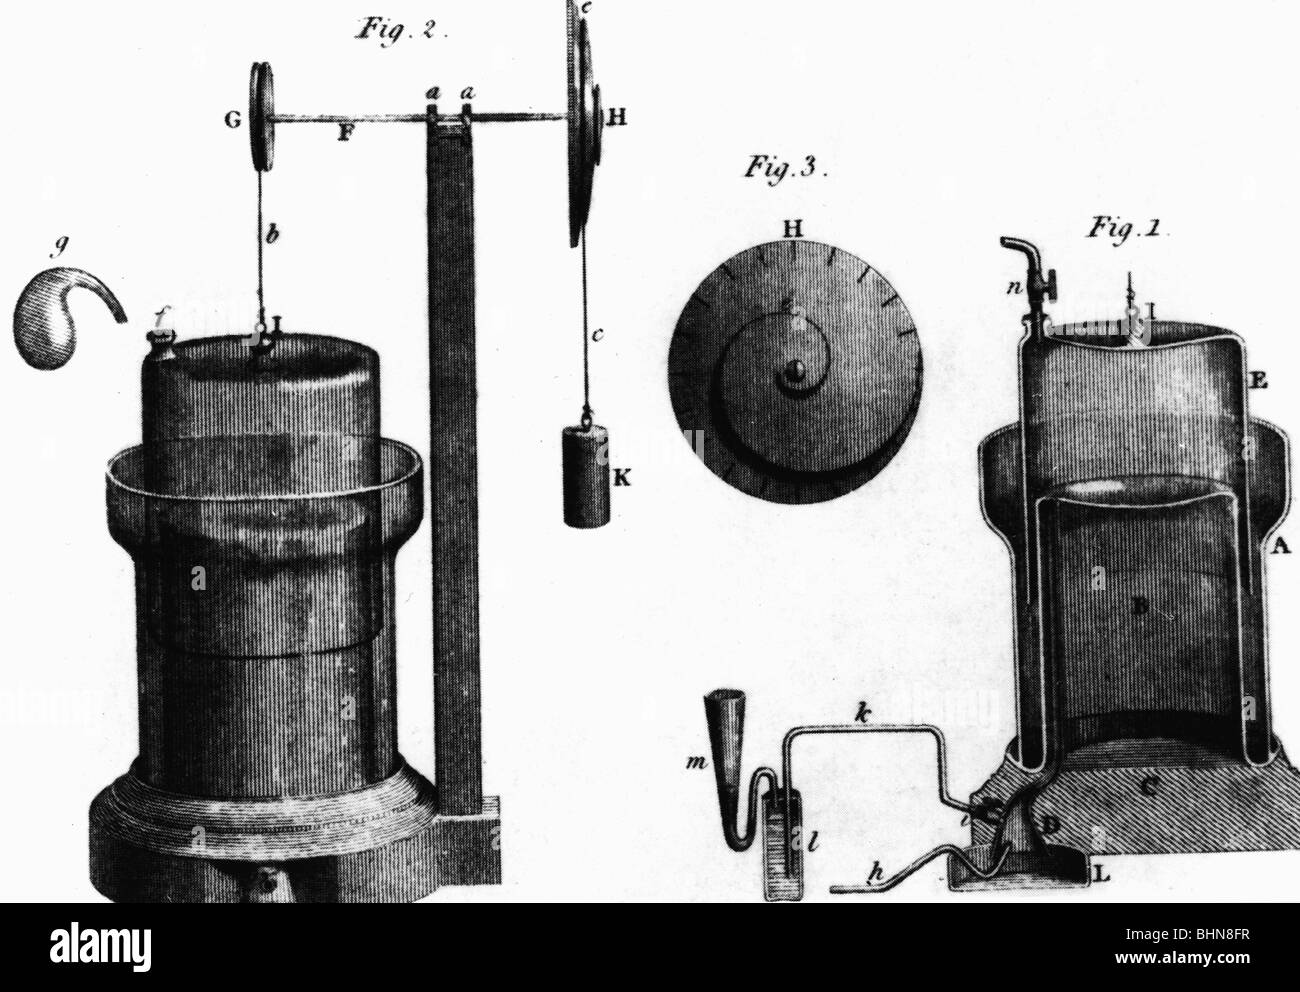 medicine, narcosis, anaesthetic machine by Humphry Davy, London, 1800, Additional-Rights-Clearances-NA - Stock Image